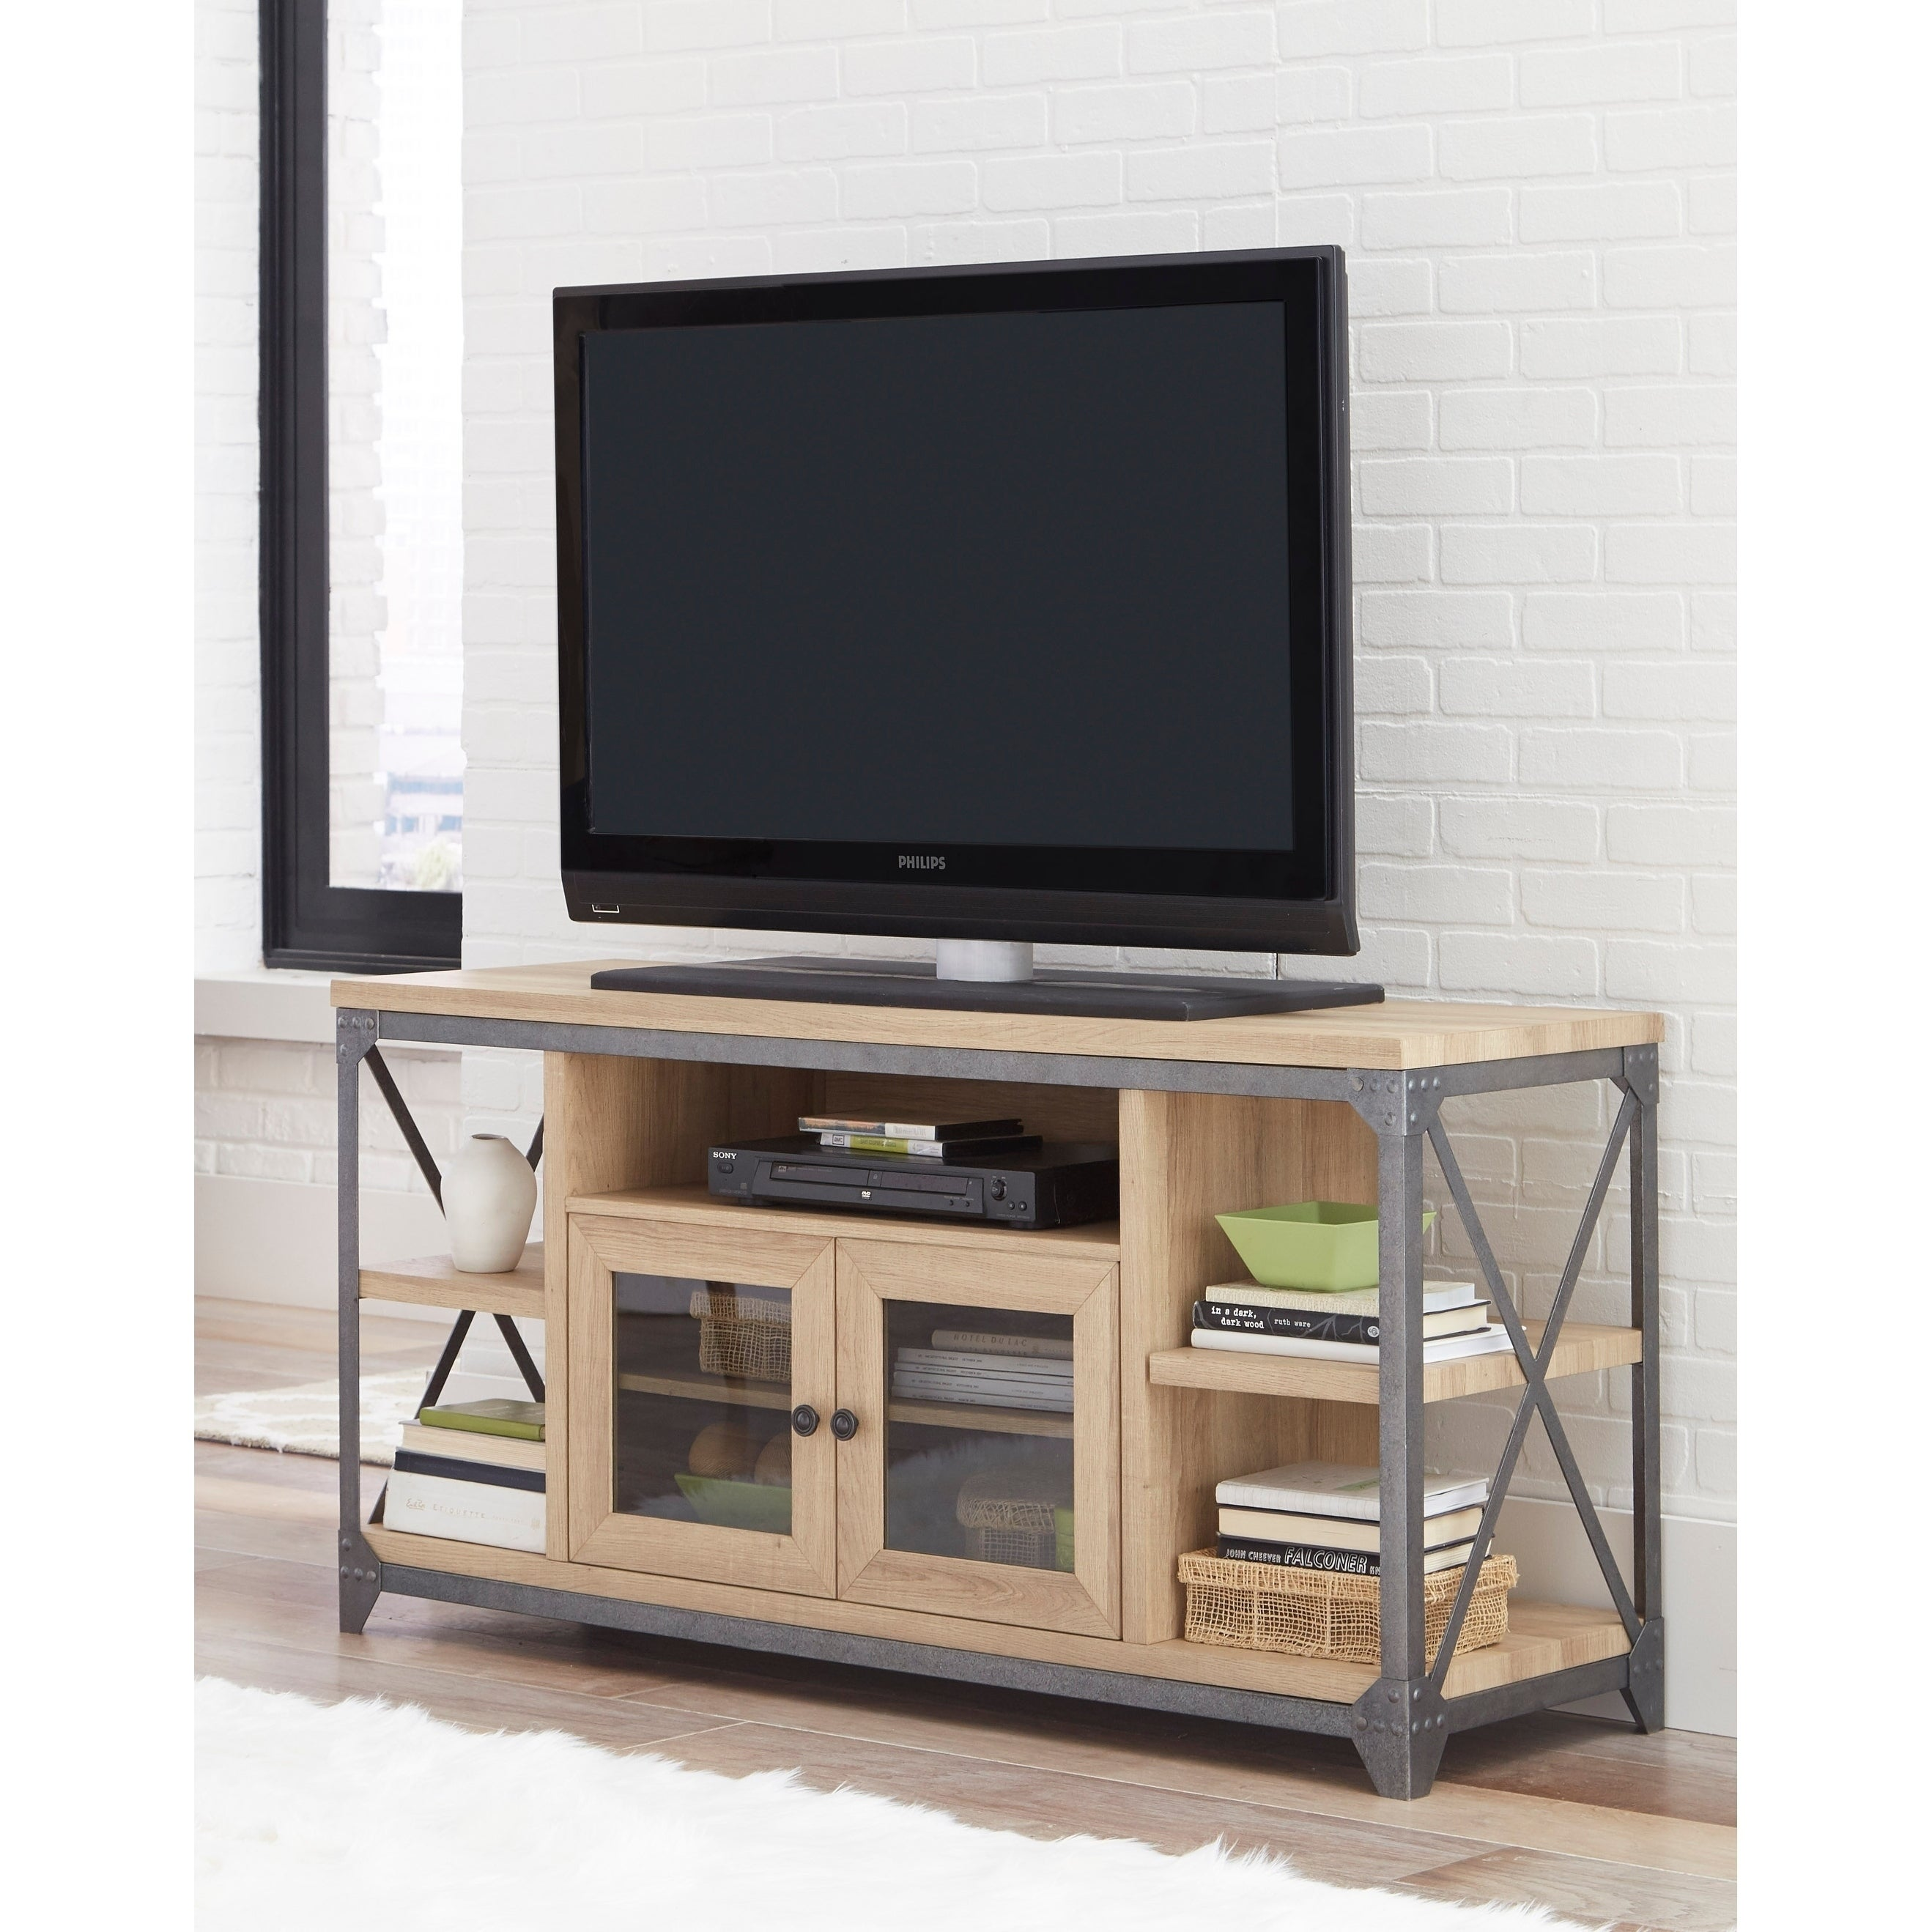 Wood And Metal Tv Stand With 5 Shelves Oak Brown Gray Free Shipping Today 22671962